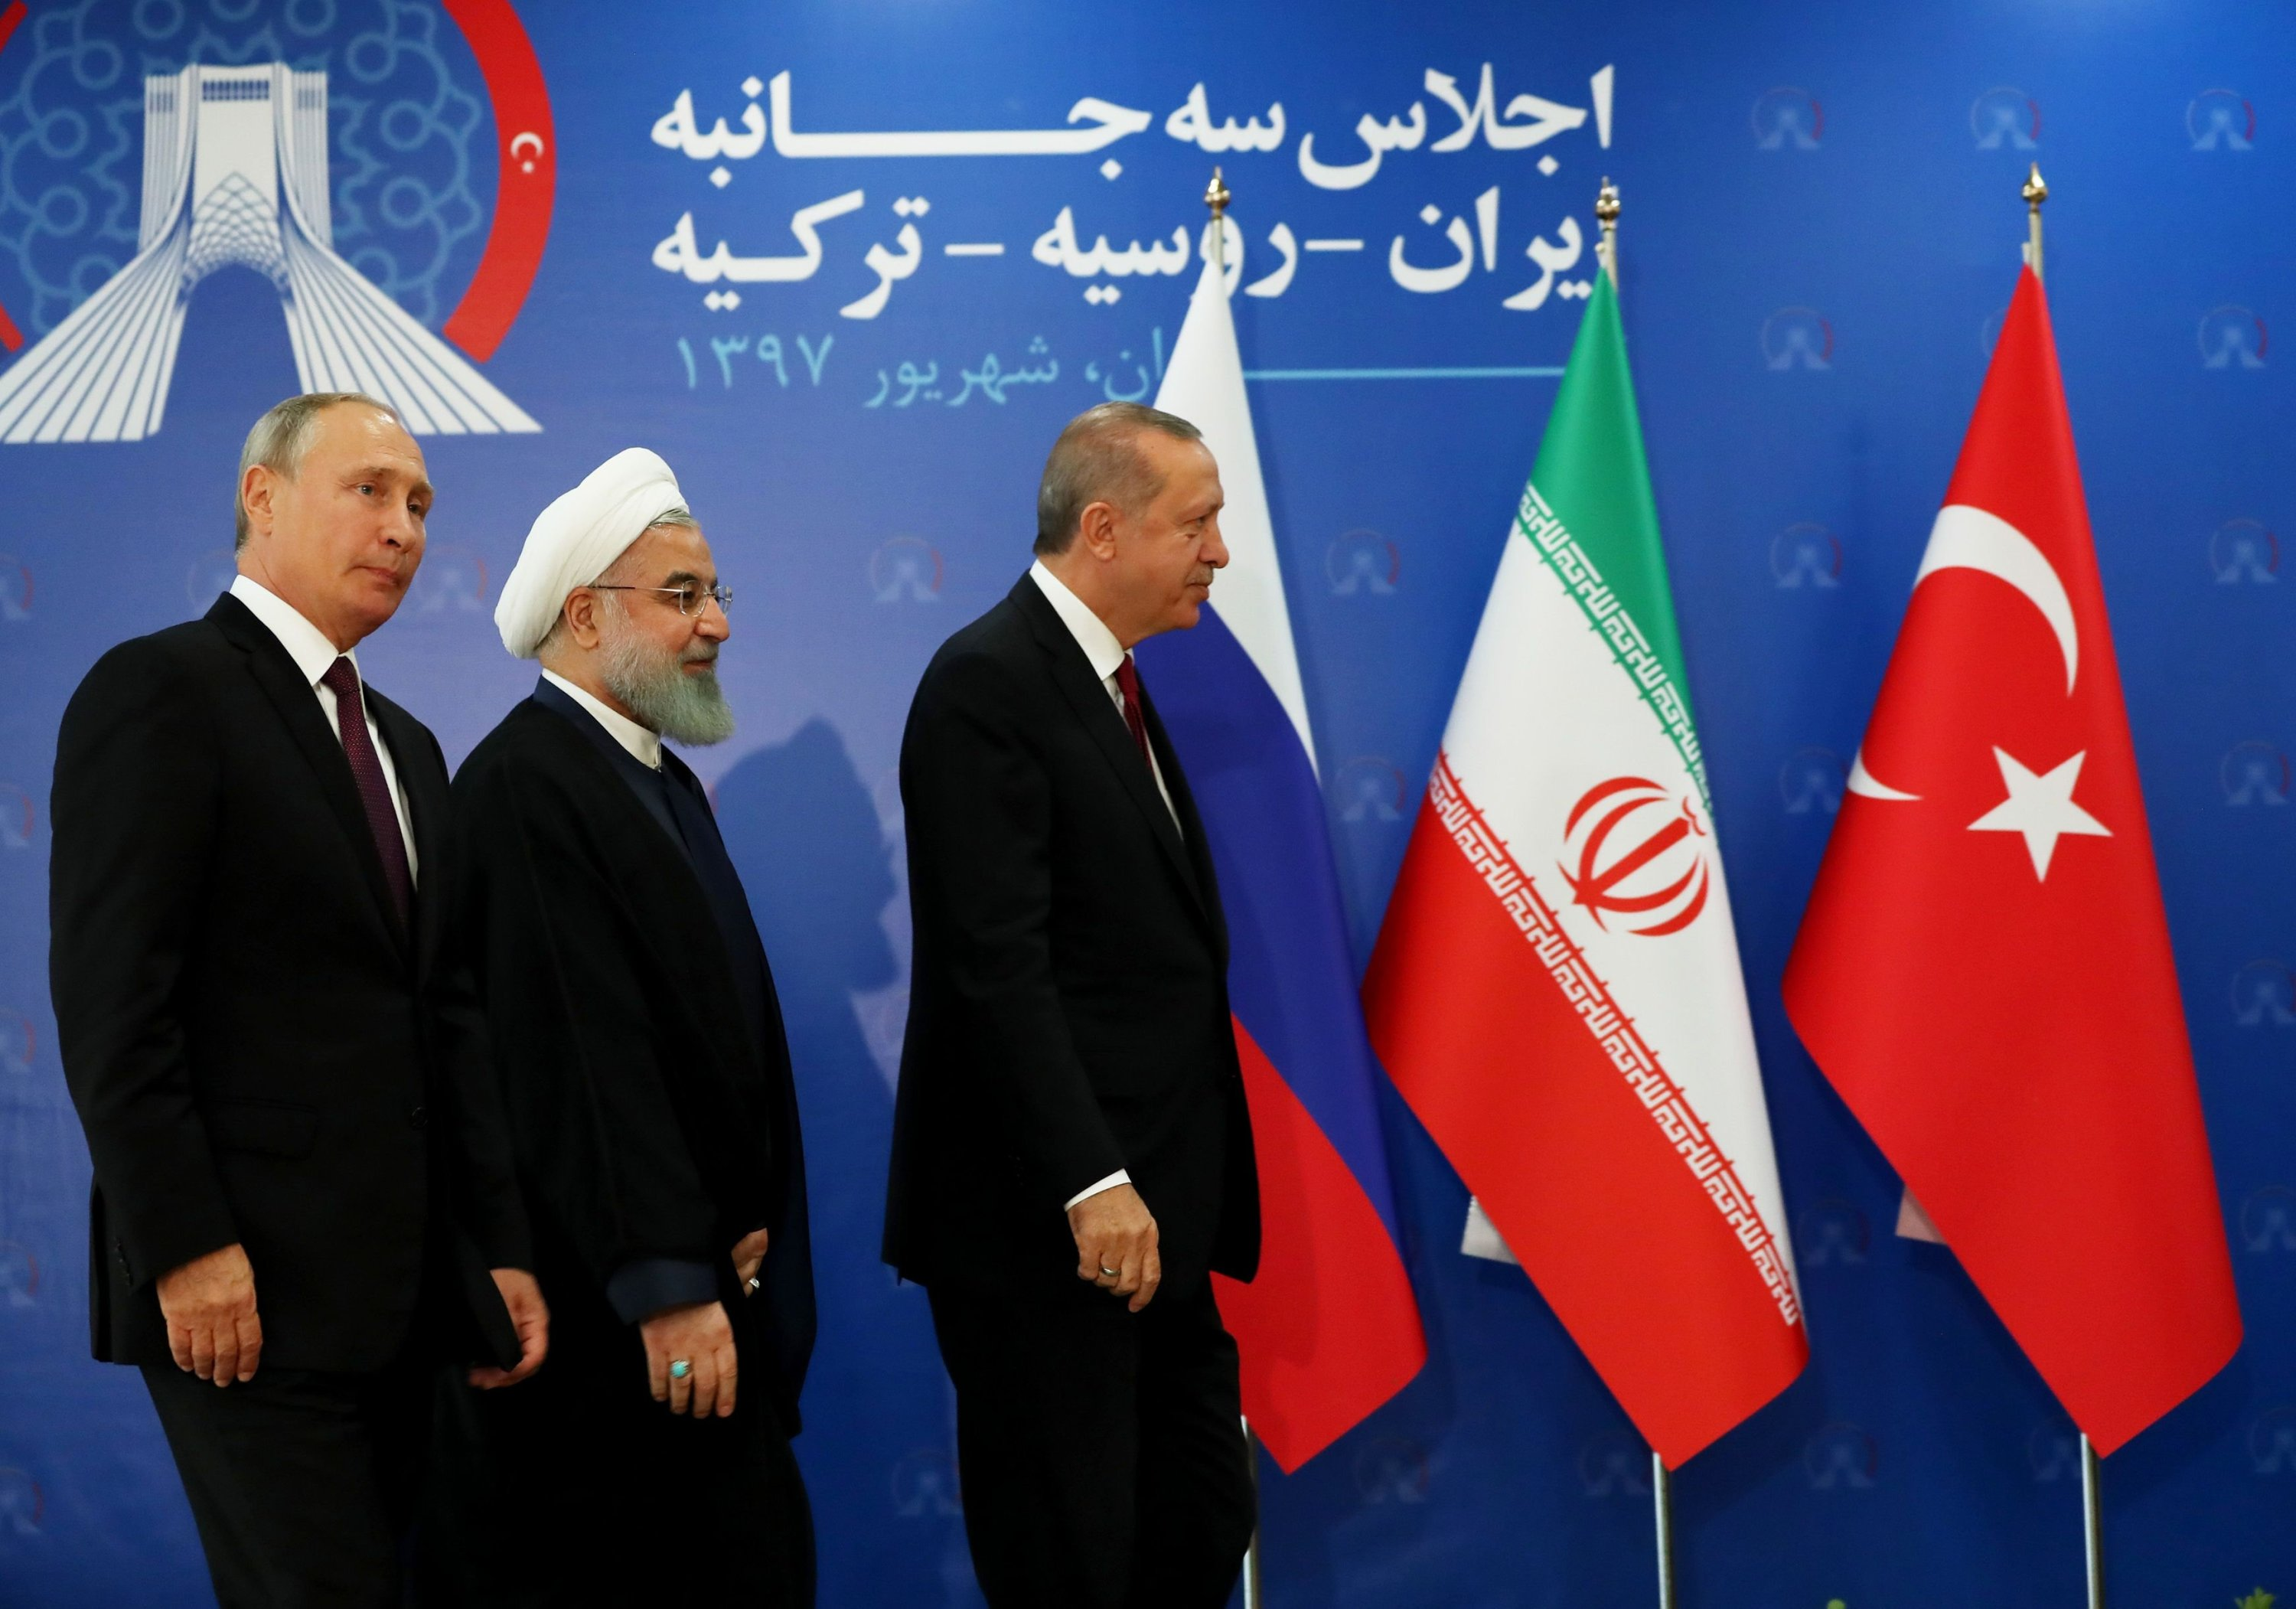 Russian President Vladimir Putin (L), Iranian President Hassan Rouhani (C) and President Recep Tayyip Erdoğan leave the stage during a trilateral summit in Tehran, Iran, Sept. 7, 2018. (HANDOUT PHOTO FROM TURKISH PRESIDENCY PRESS OFFICE via AFP)